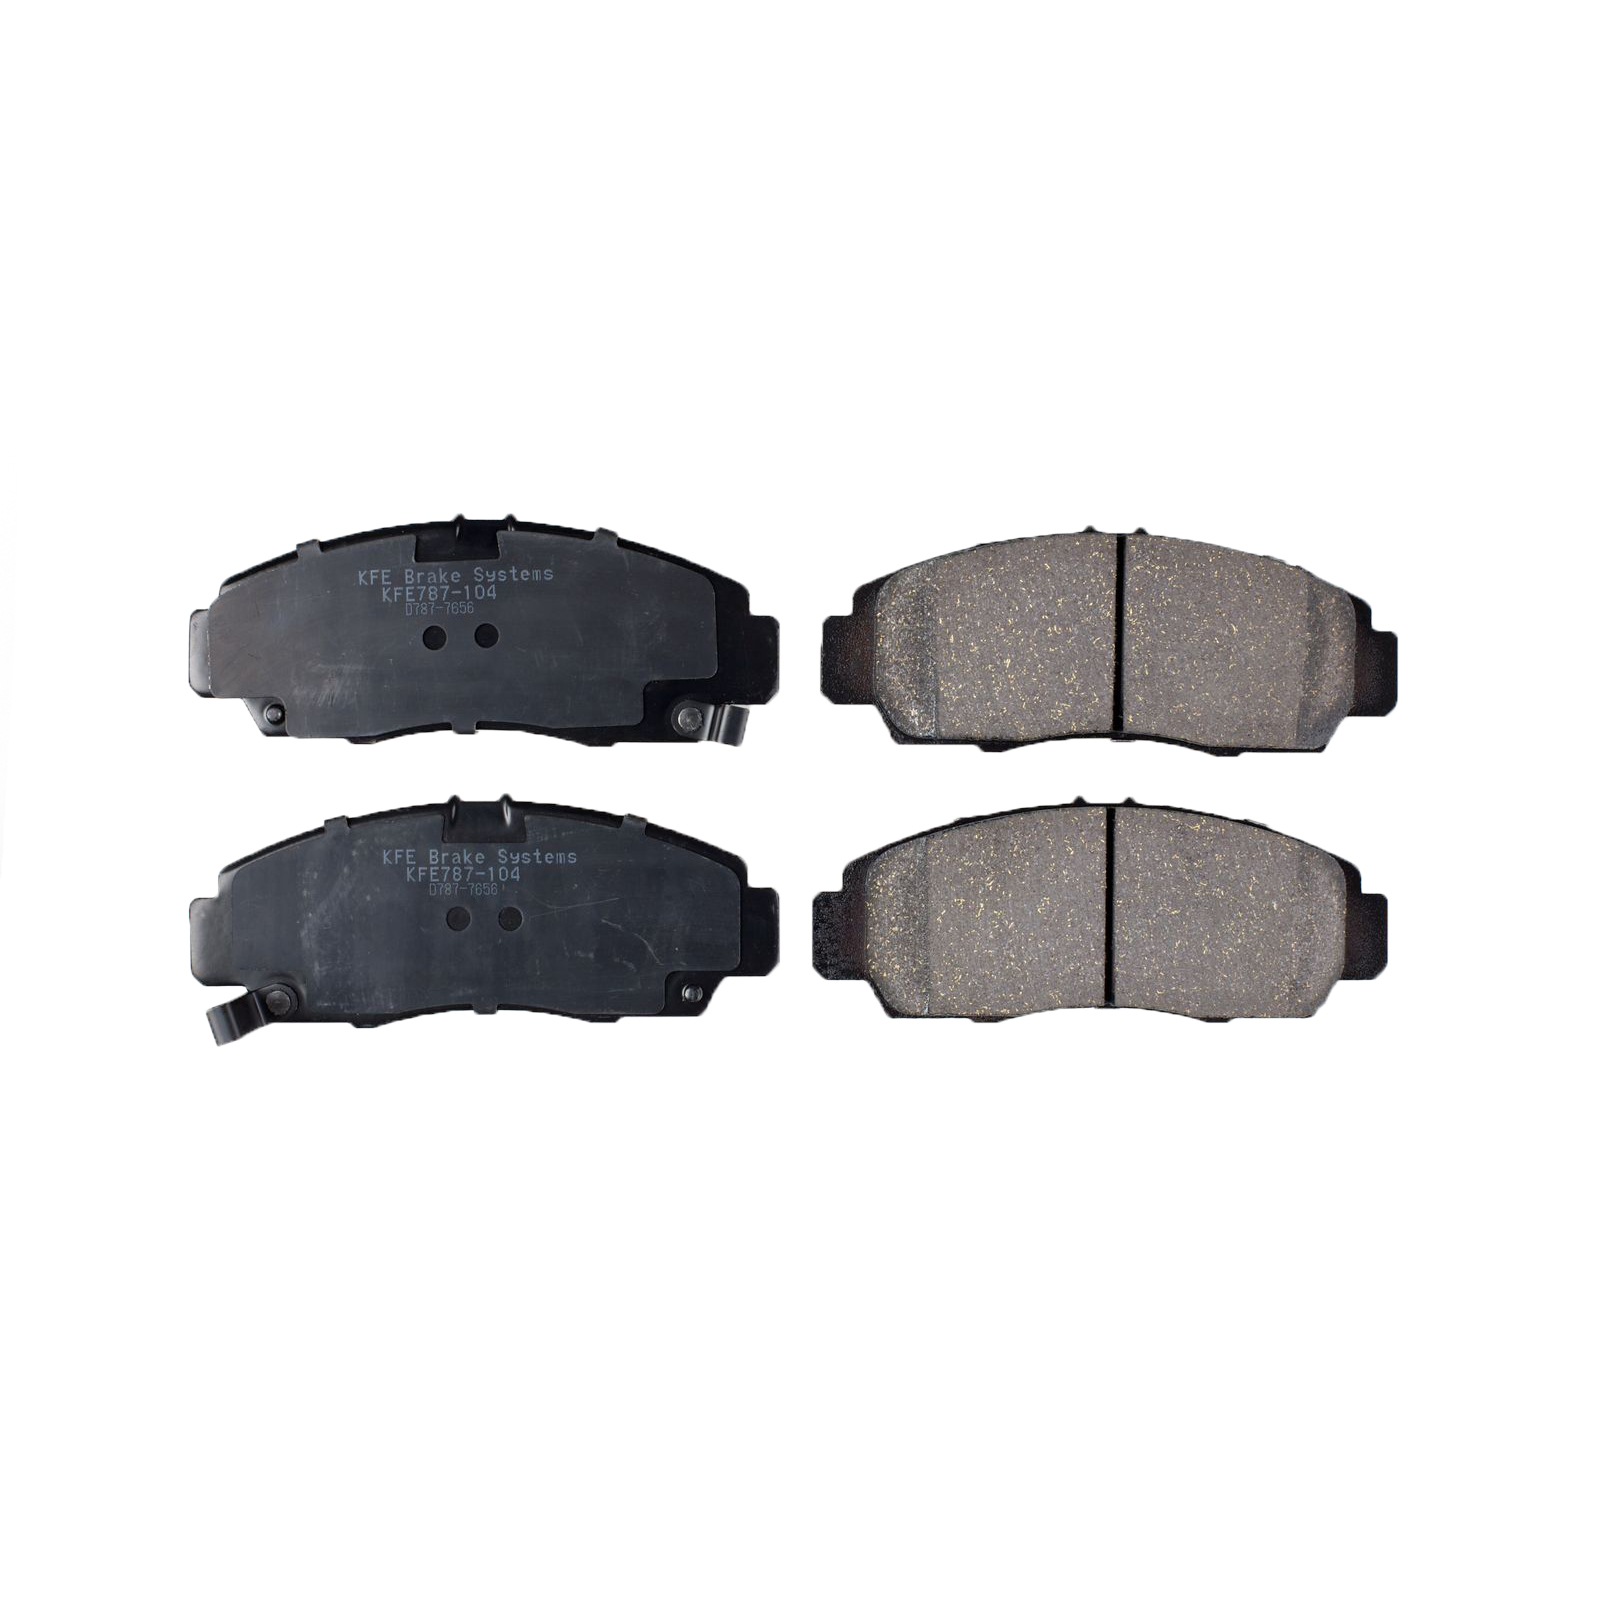 KFE787-104 Ultra Quiet Advanced Brake Pad